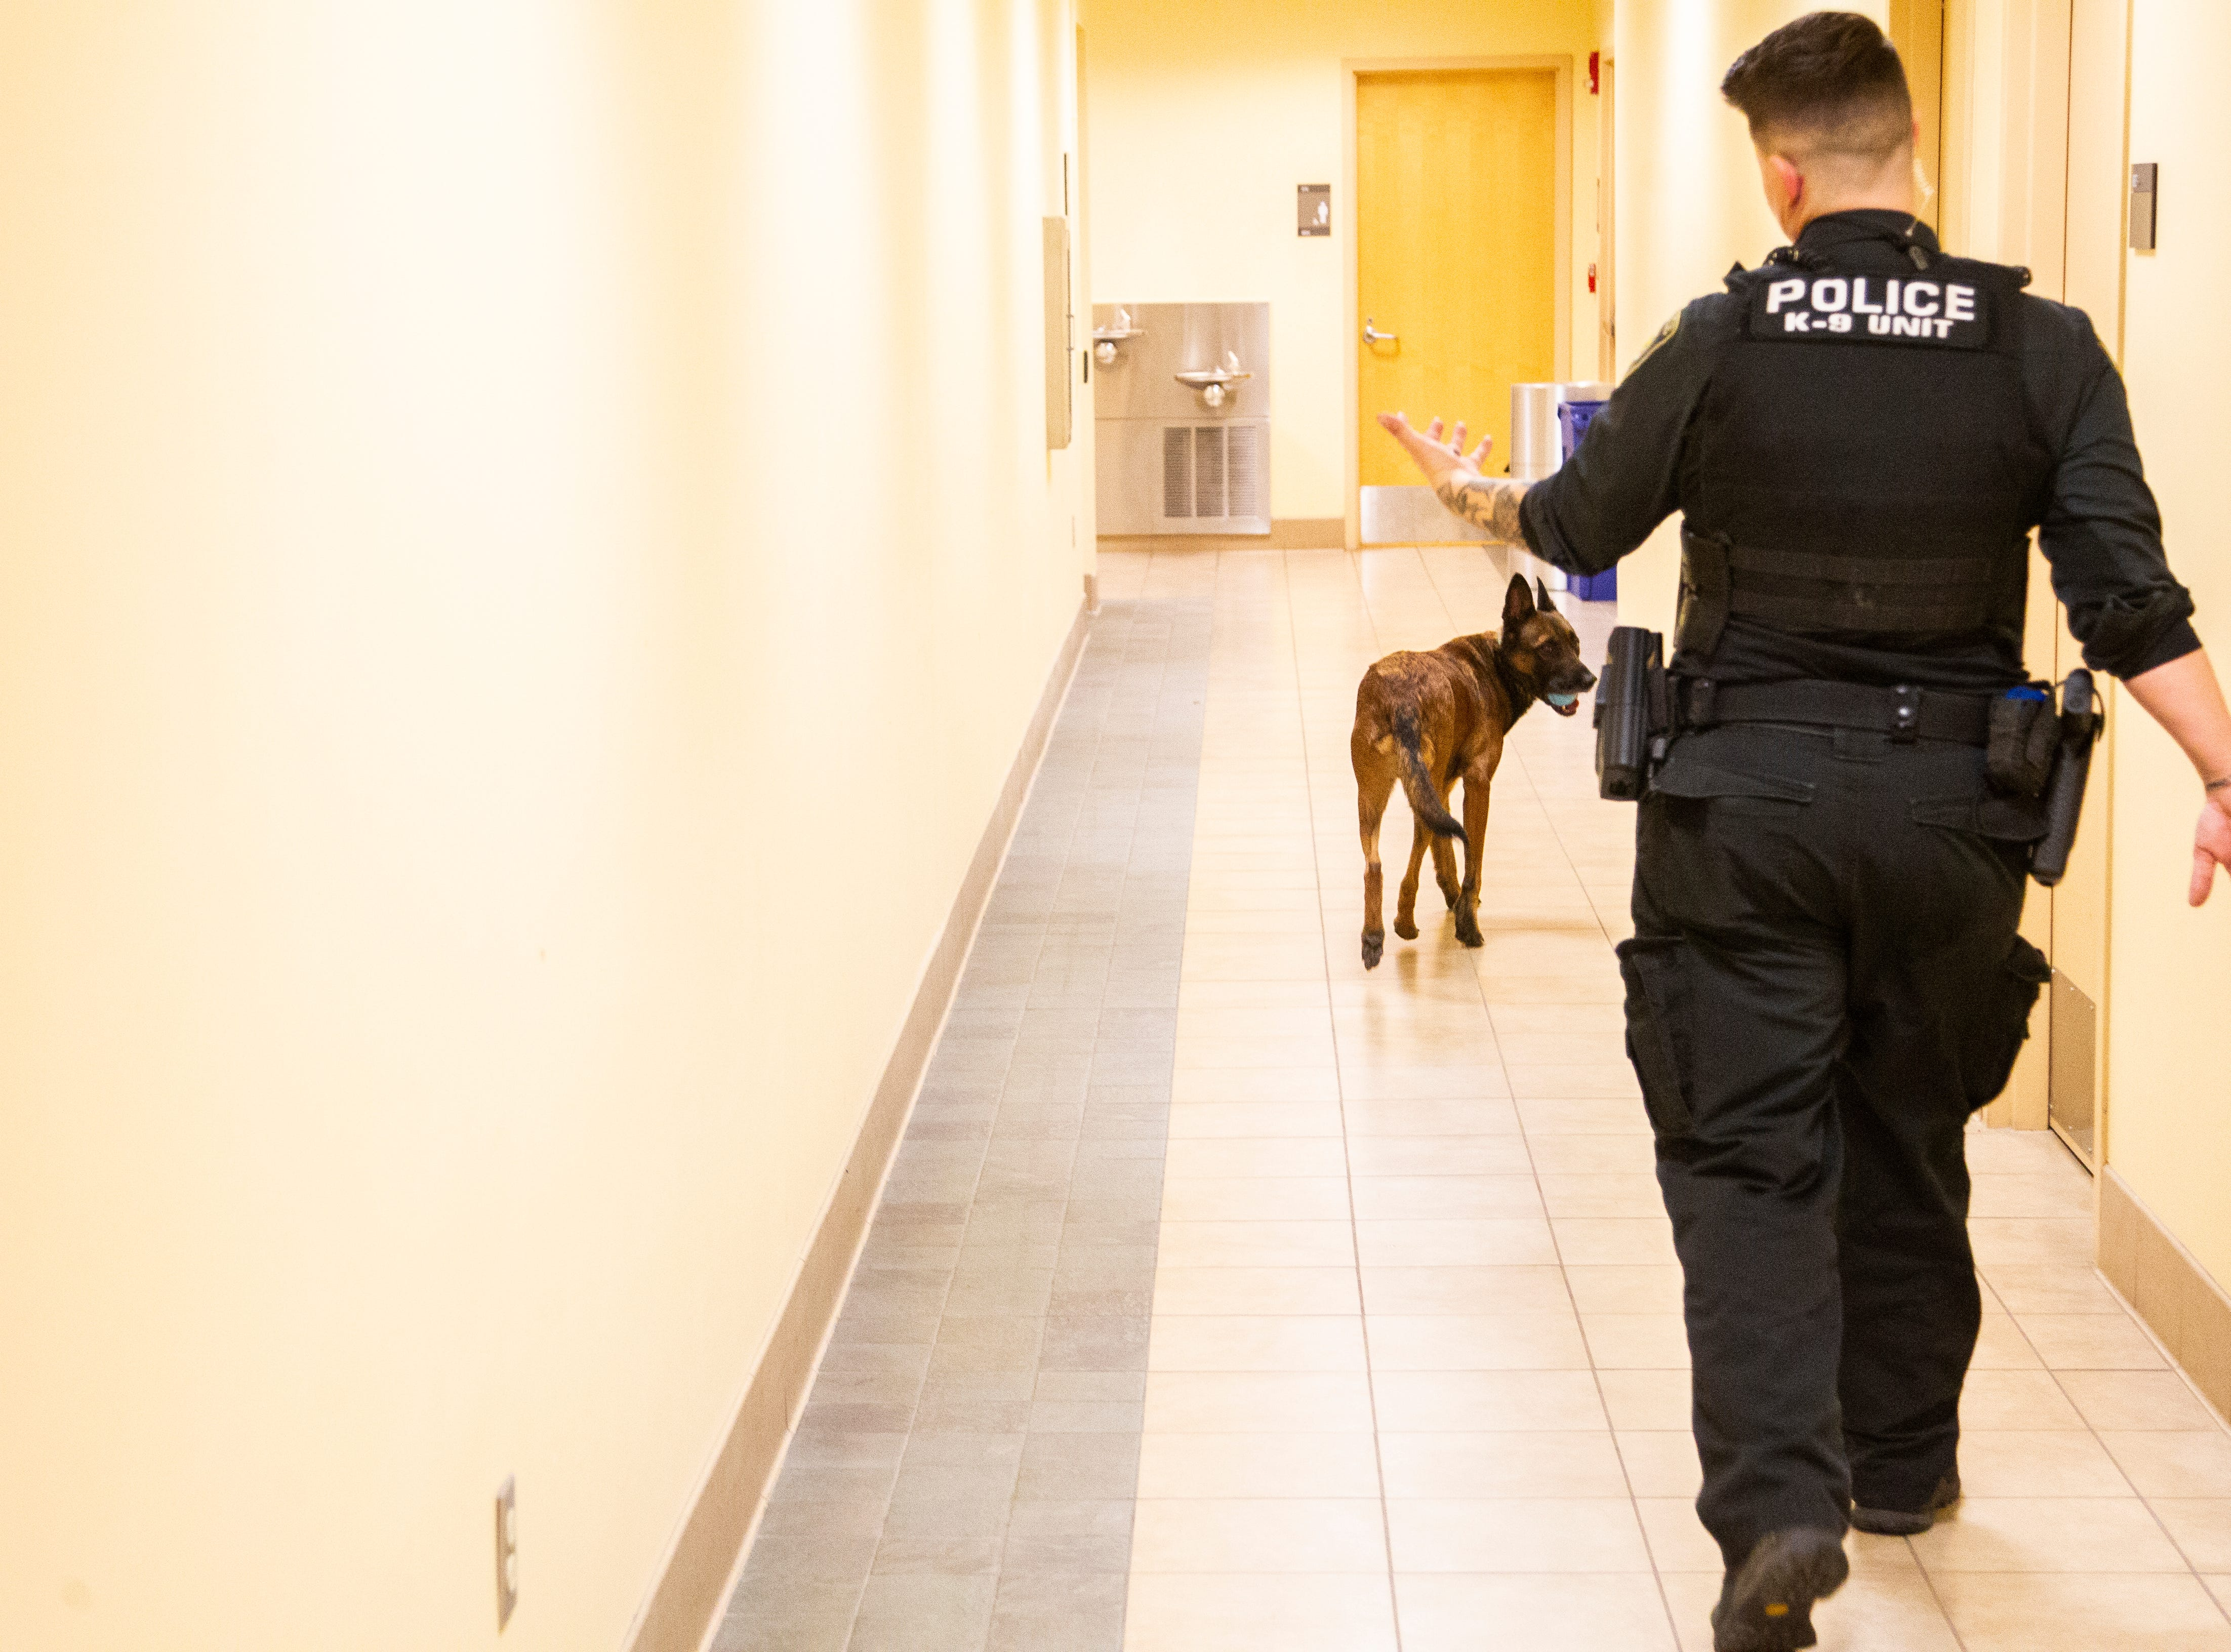 K9 Falo, an explosive and detection dog, walks down a hallway ahead of Officer Jackie Anderson on Saturday, Dec. 1, 2018, at the University of Iowa Police Department at the Old Capitol Town Center in Iowa City.